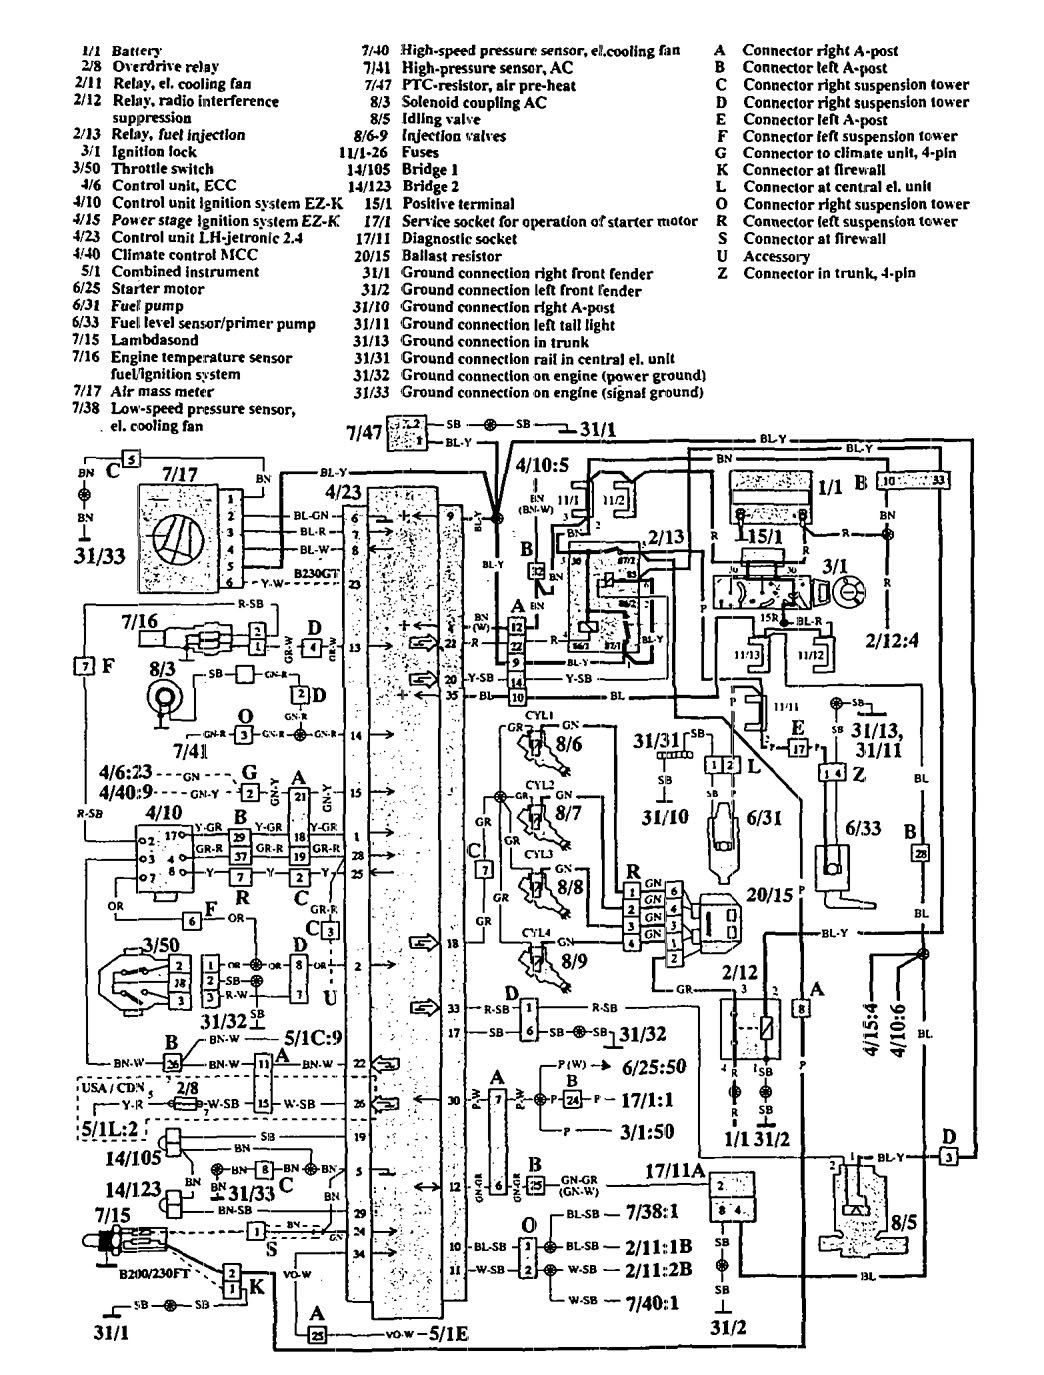 Totaline P474 1050 Wiring Diagram Trusted Diagrams Thermostat Wire Center U2022 Smc